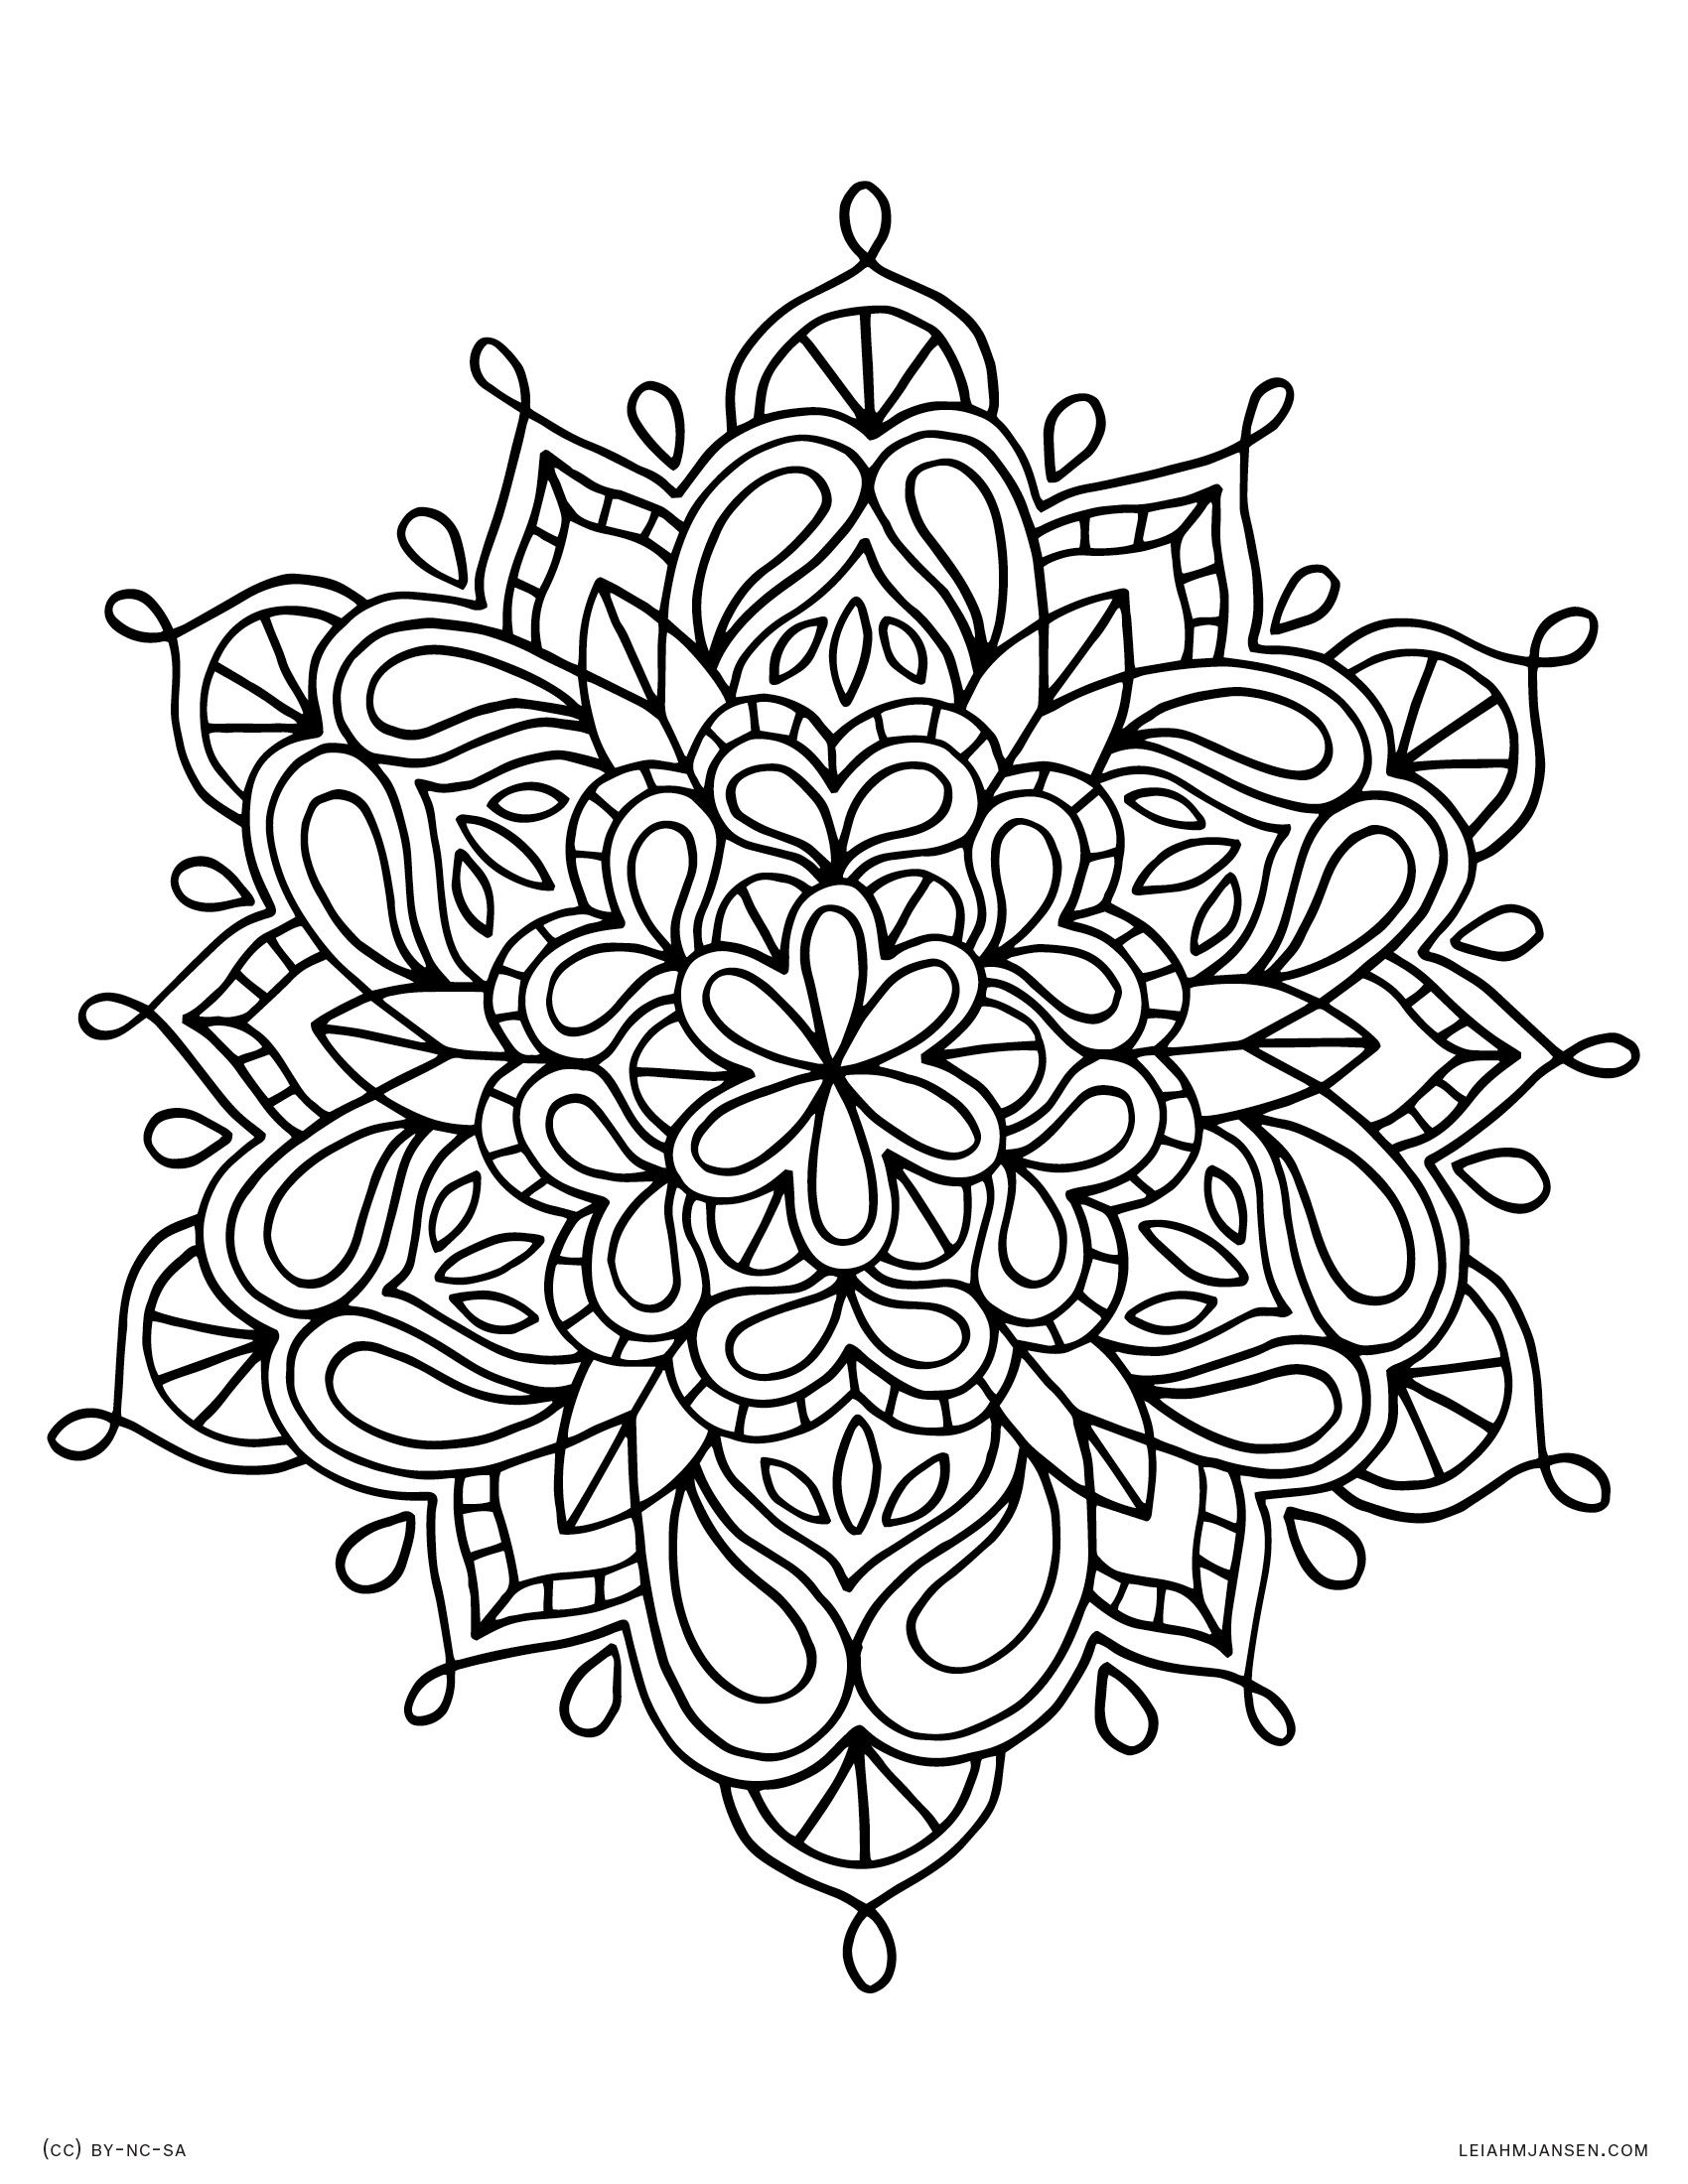 Free Printable Space Colouring Pages Coloring Pages Coloring Pages